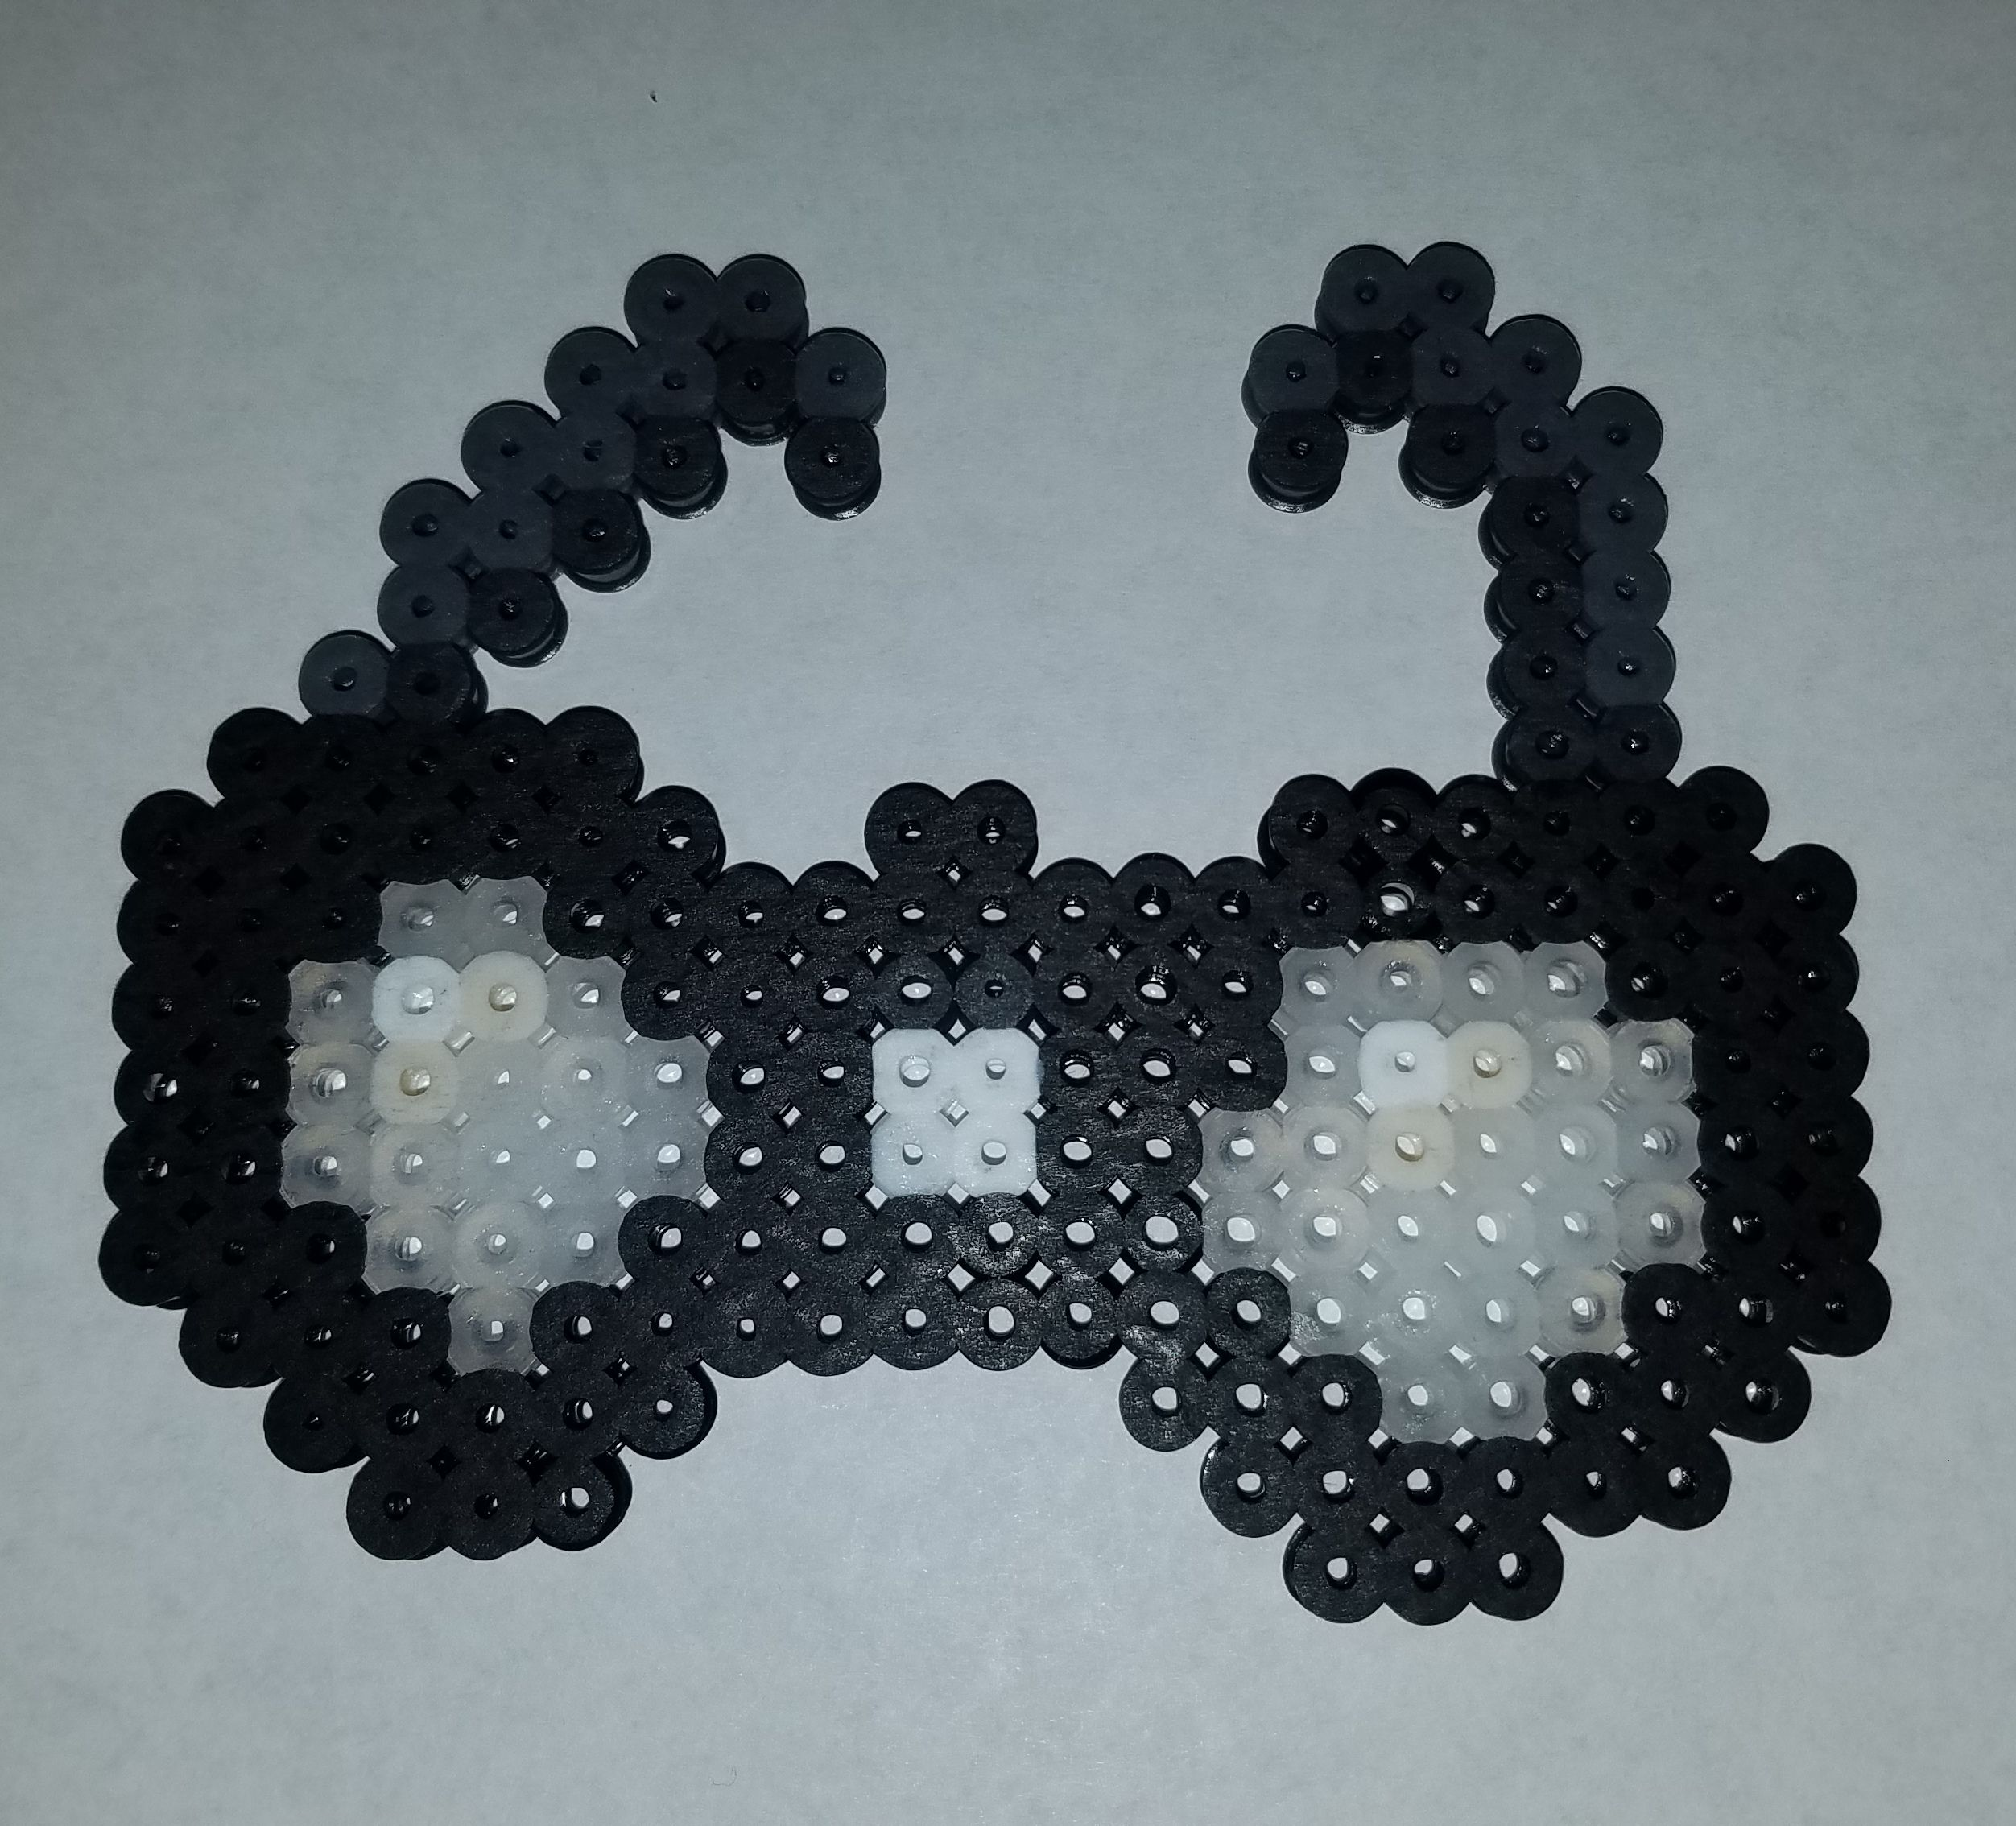 Item From The Binding Of Isaac